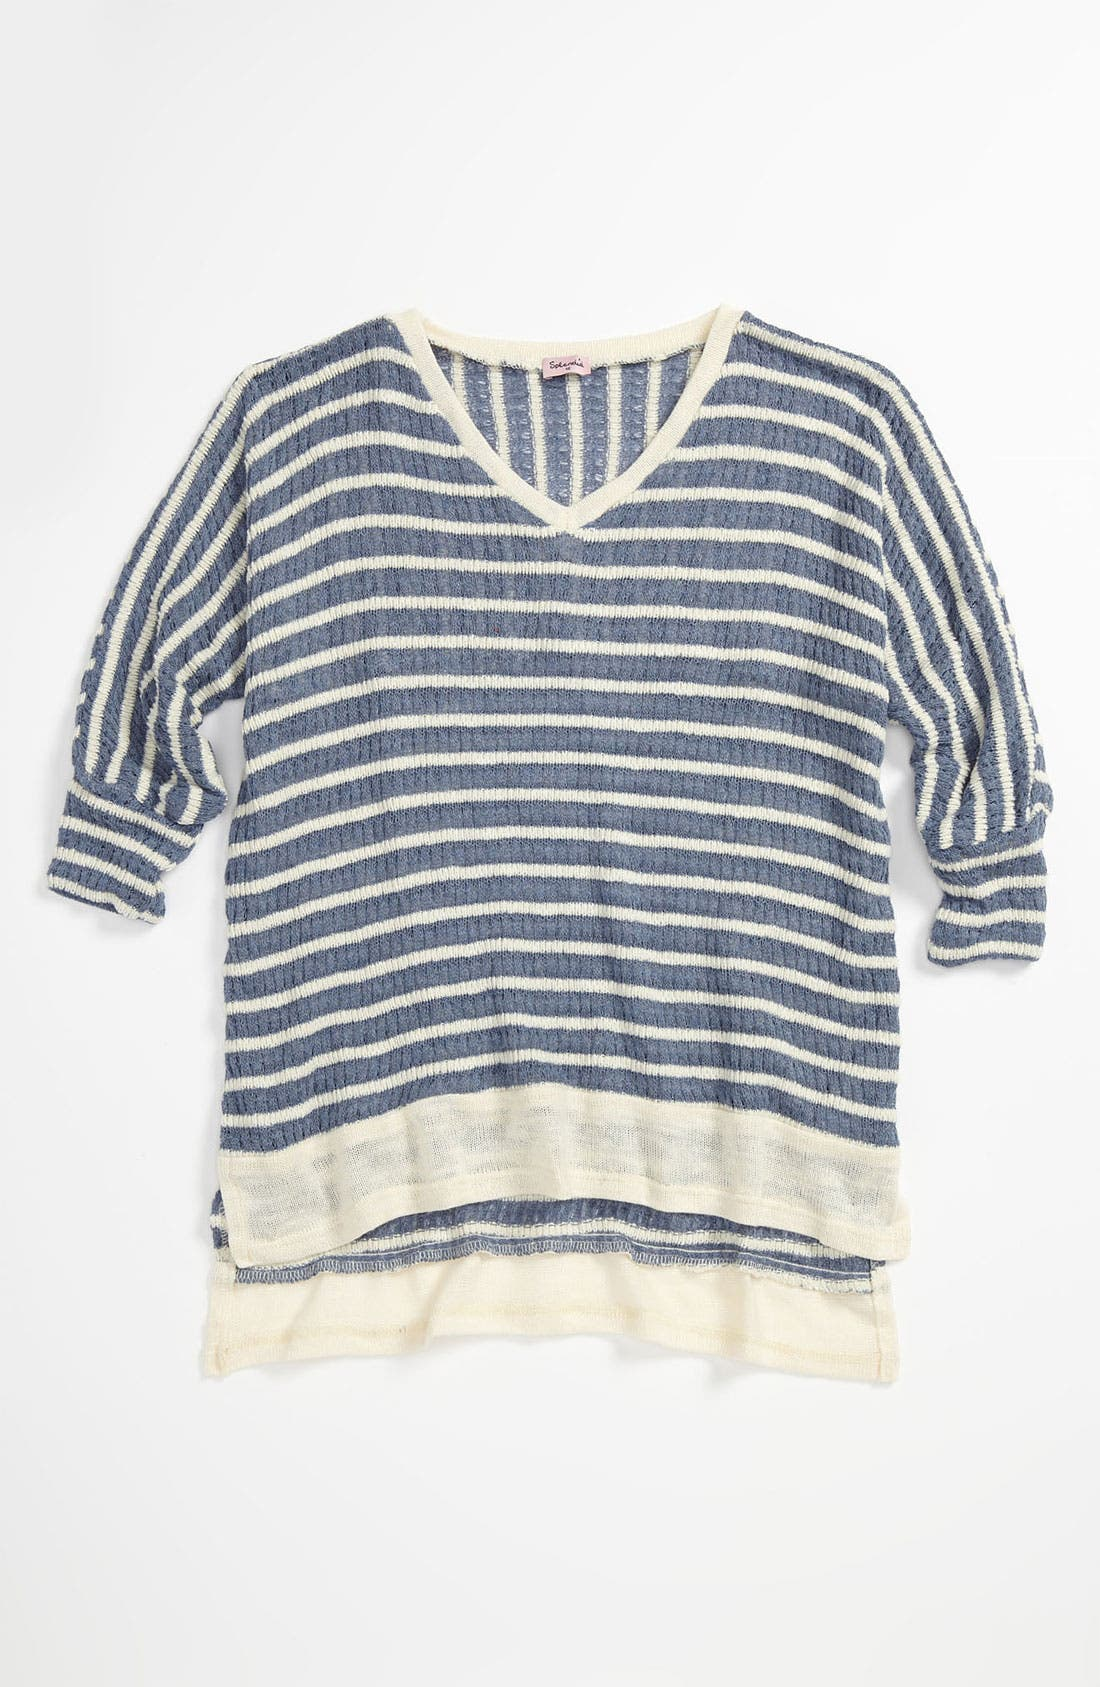 Main Image - Splendid 'Panama' Stripe Top (Big Girls)